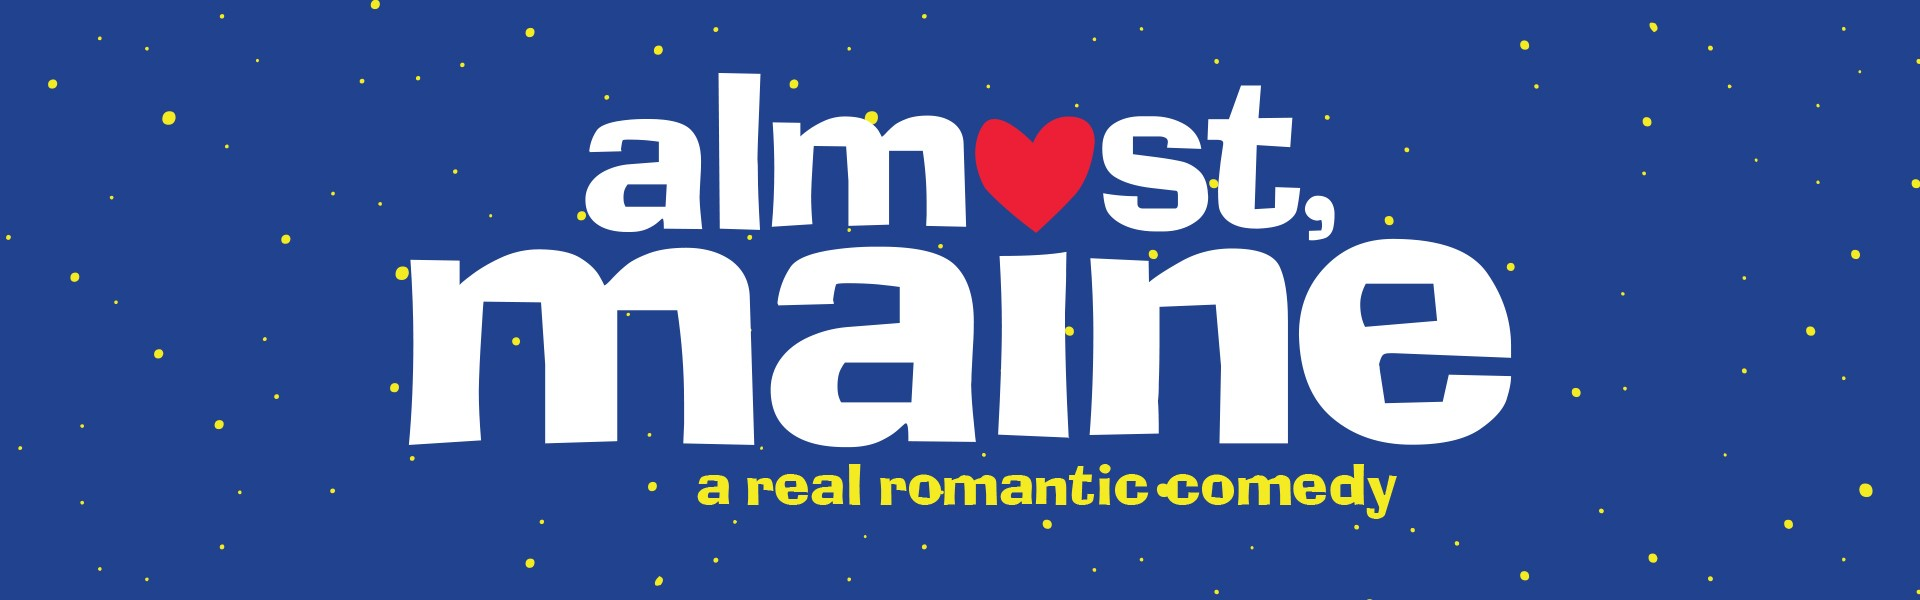 Almost Maine a Real Romantic Comedy theater poster